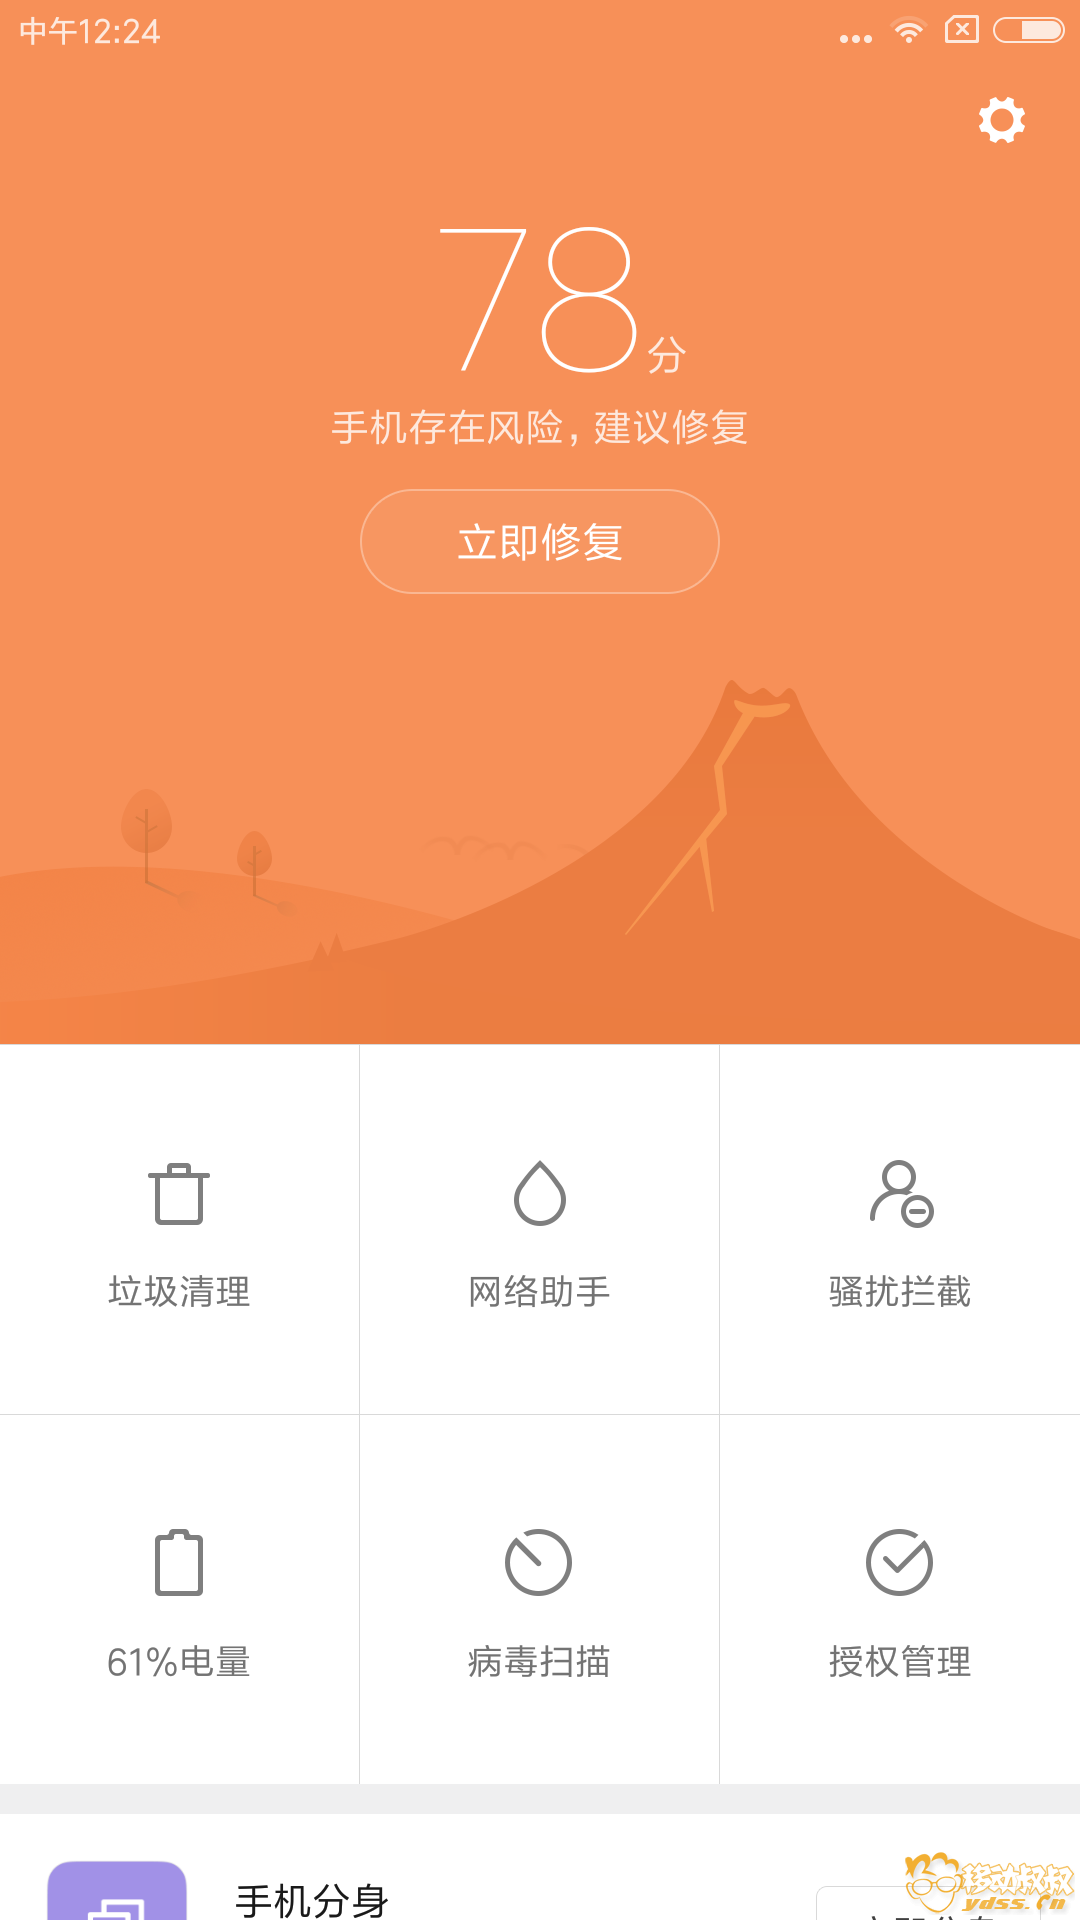 Screenshot_2017-06-18-12-24-24-028_com.miui.securitycenter.png